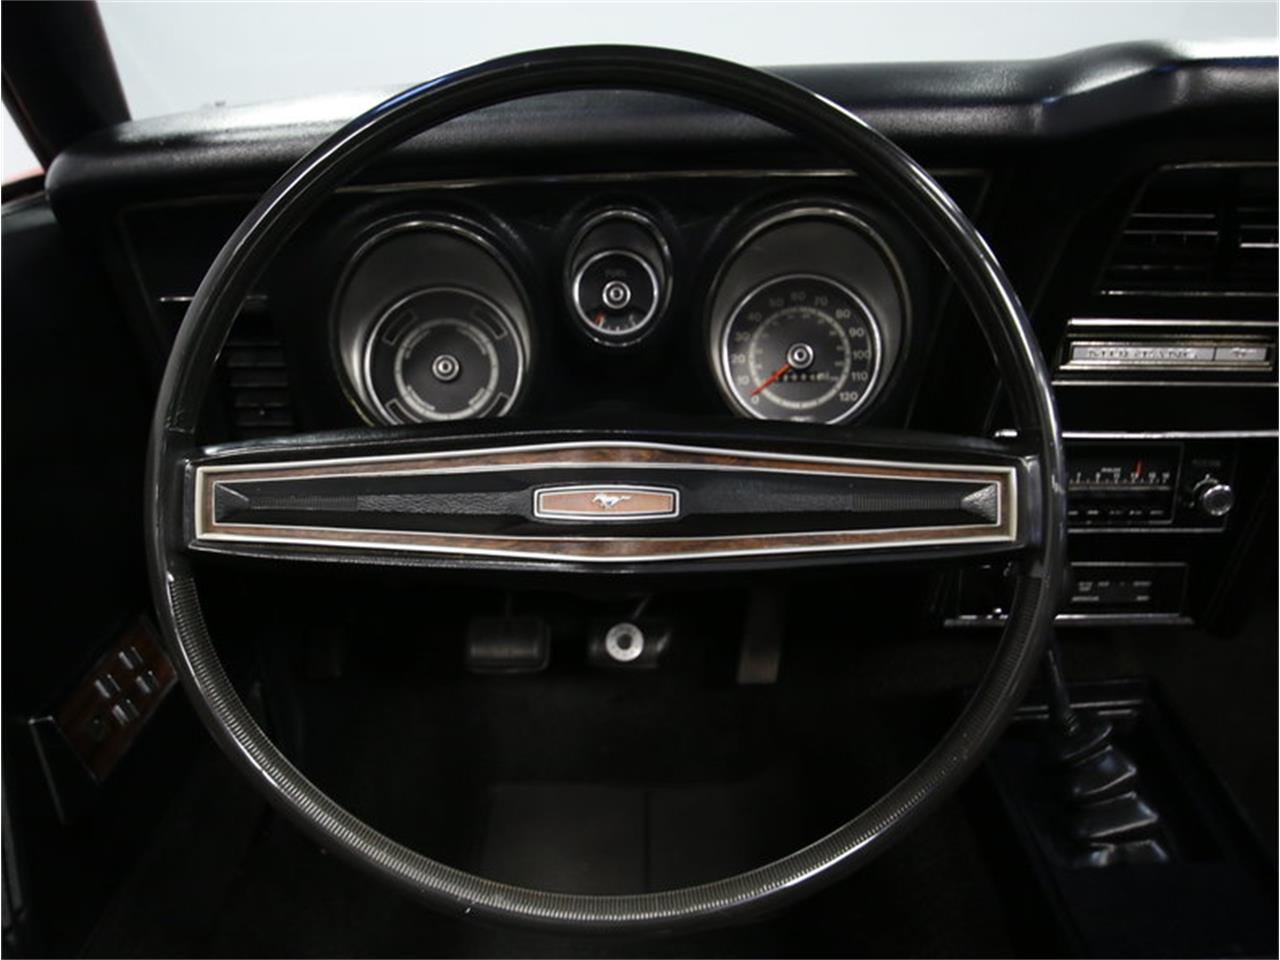 Large Picture of Classic 1973 Mustang 351 Cobra Jet located in Concord North Carolina - $24,995.00 Offered by Streetside Classics - Charlotte - KISW